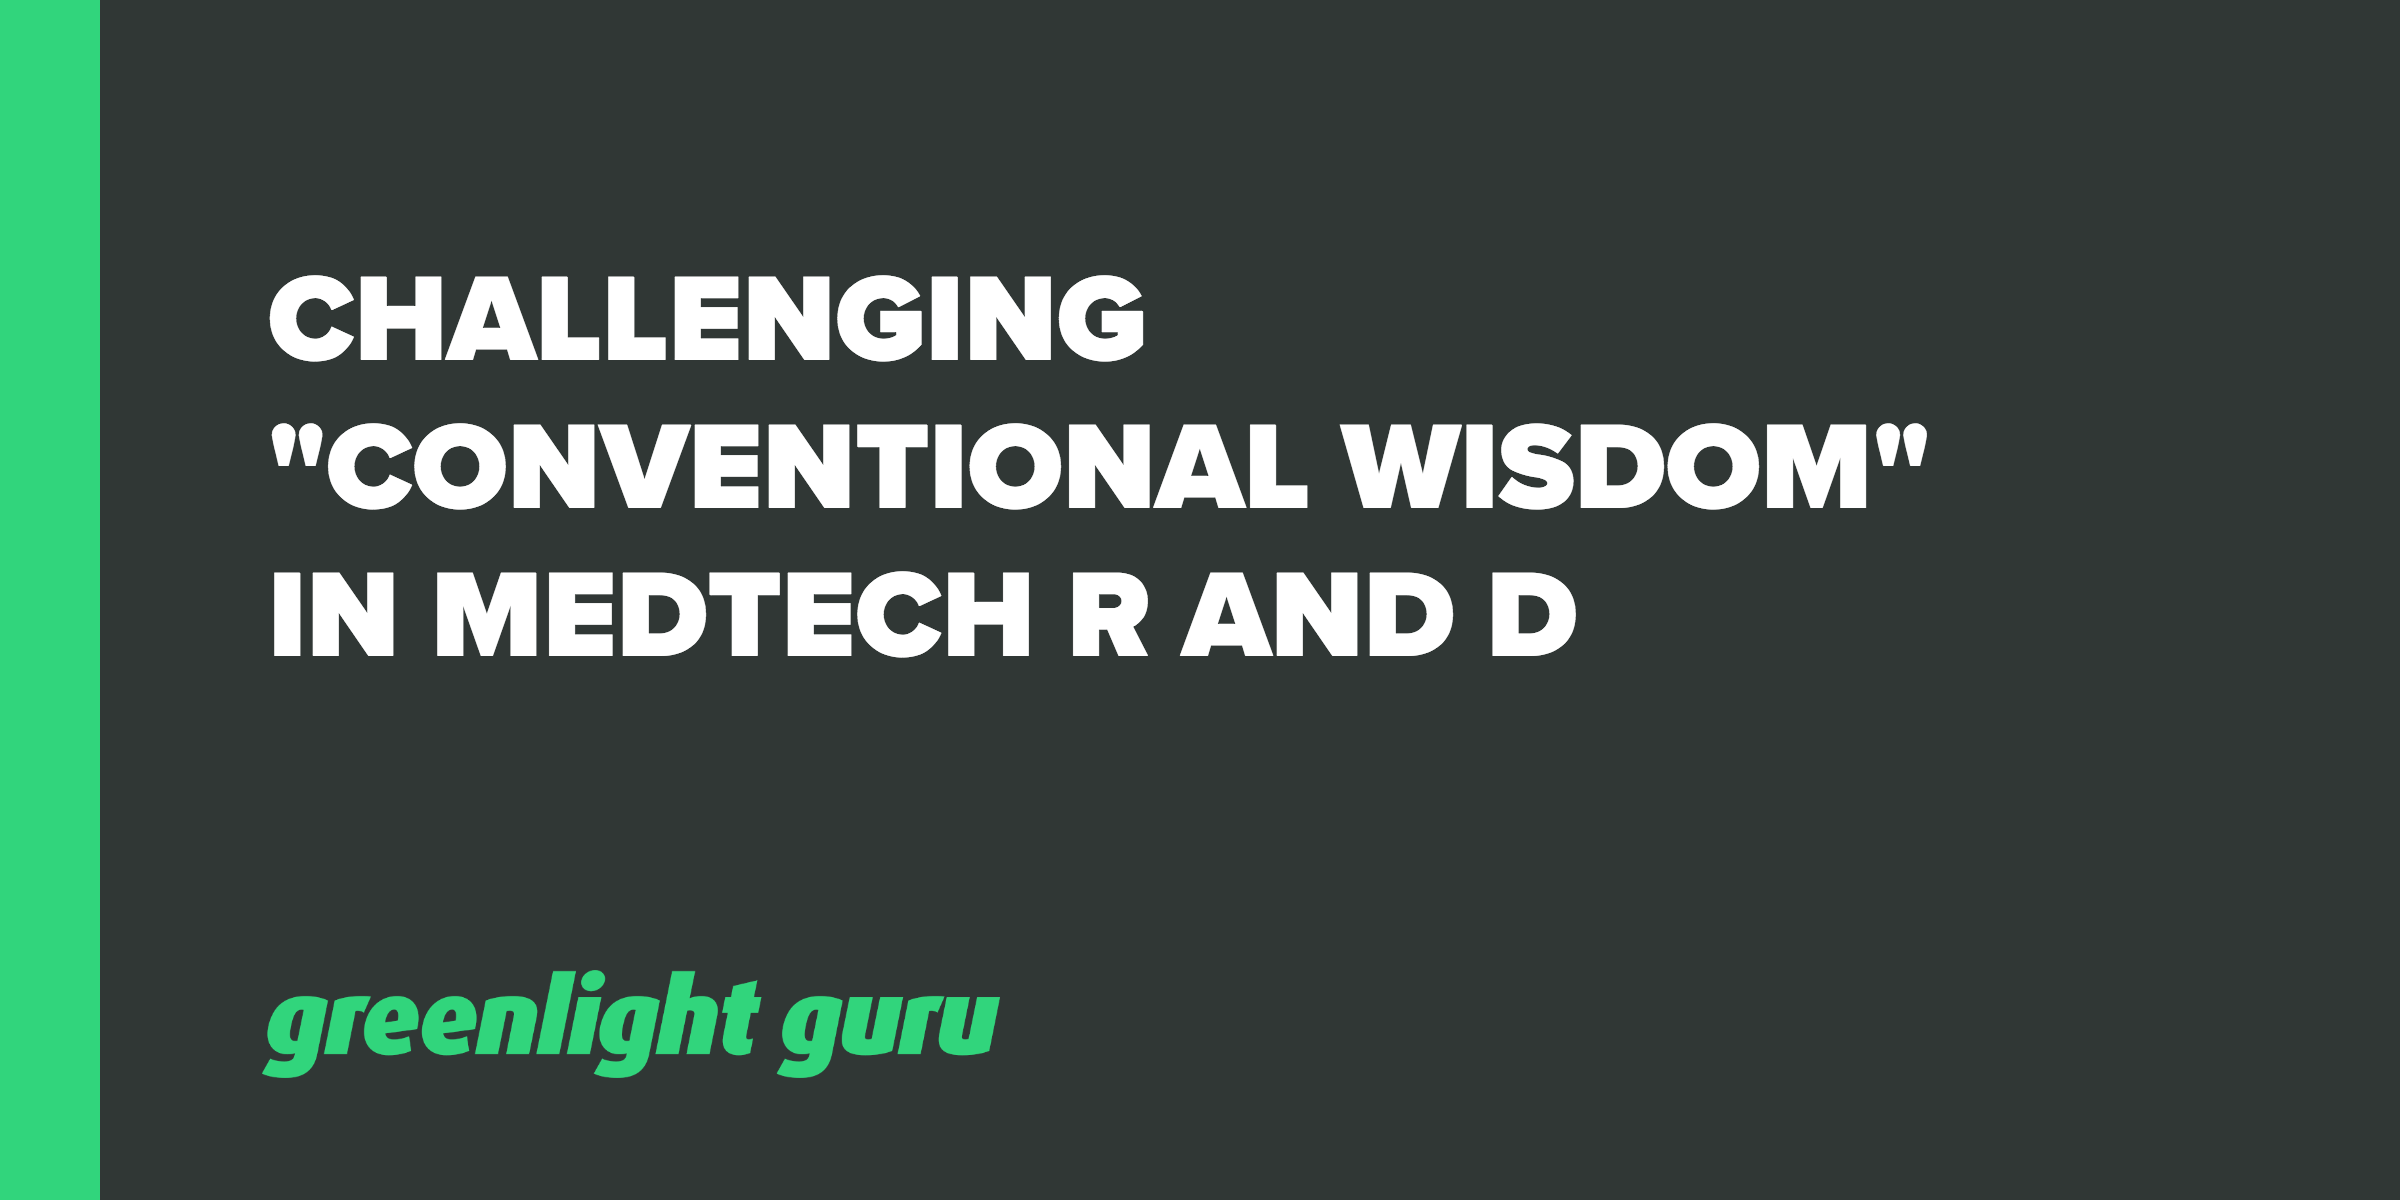 """Challenging """"Conventional Wisdom"""" in Medtech R and D - Featured Image"""